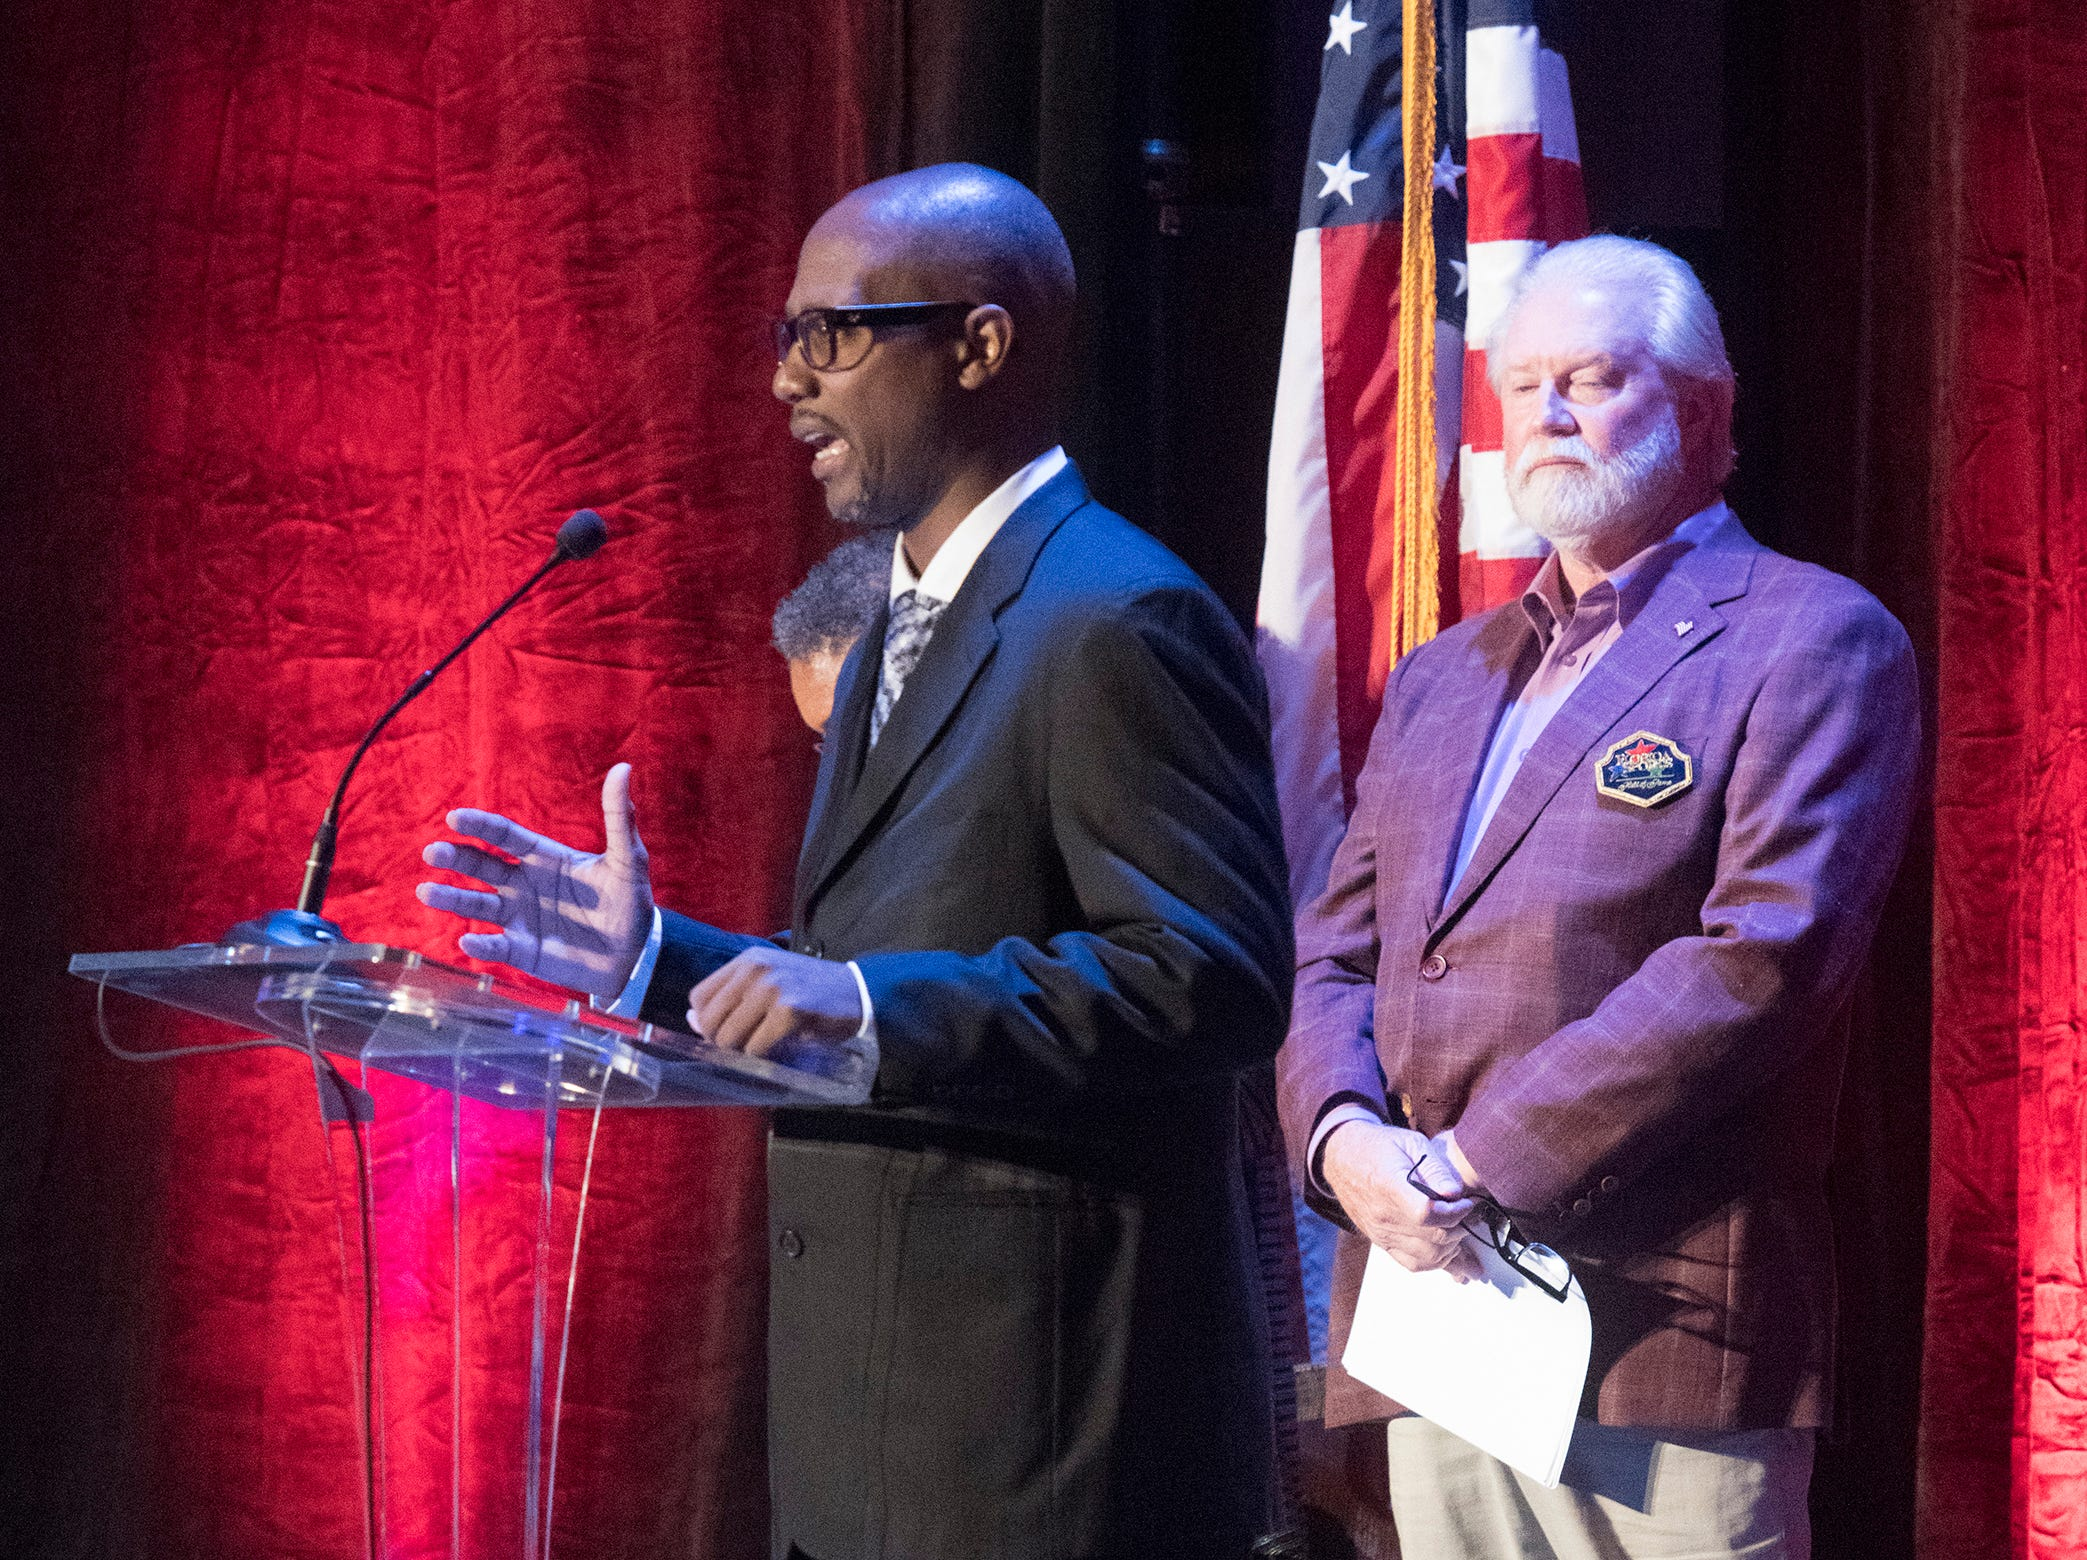 Lumon May accepts the 2018 Fame for Fitness Award on behalf of the Southern Youth Sports Assoc. of Pensacola during the 2018 Florida Sports Hall of Fame Enshrinement Ceremony at the National Naval Aviation Museum on Wednesday, Nov. 7, 2018.